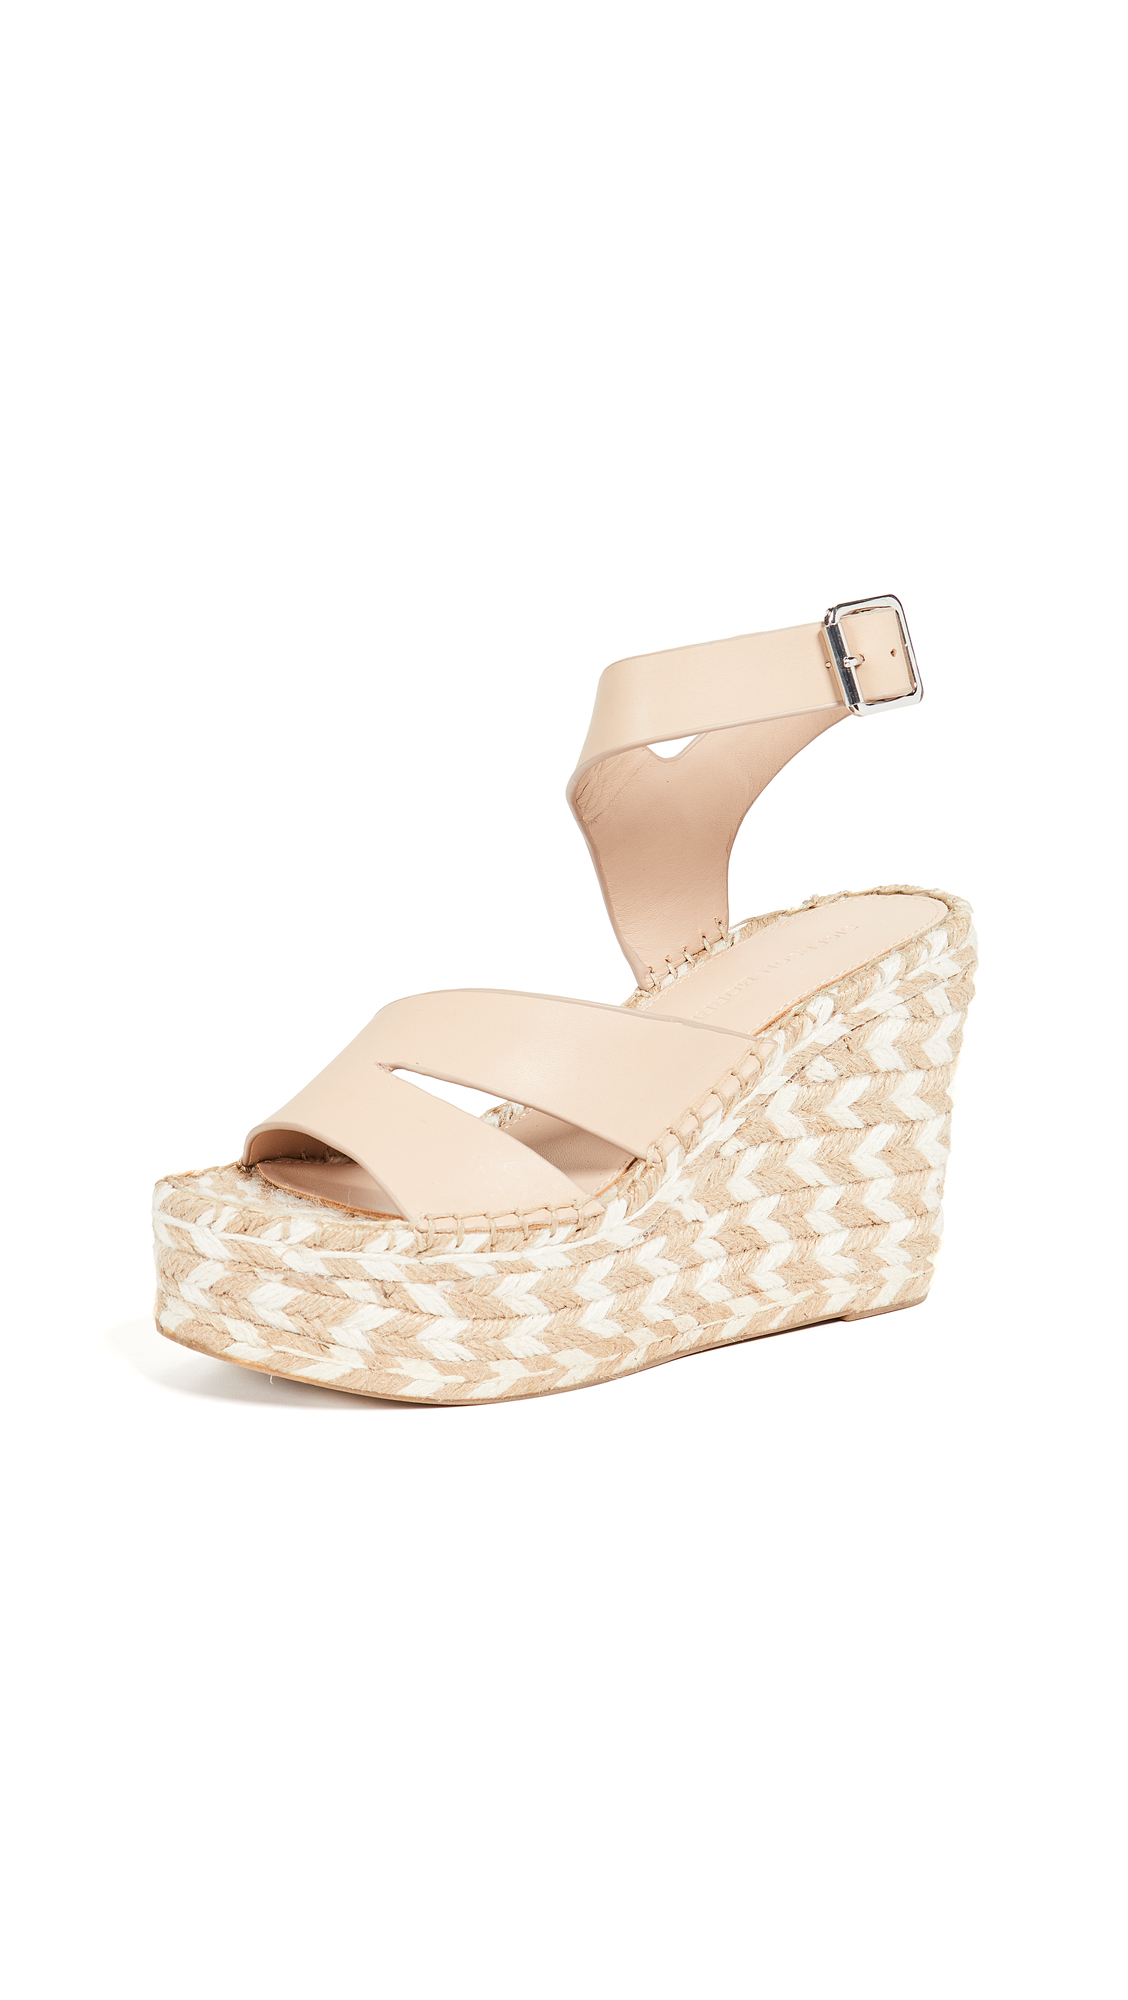 Sigerson Morrison Arien Espadrille Wedges - Light Latte